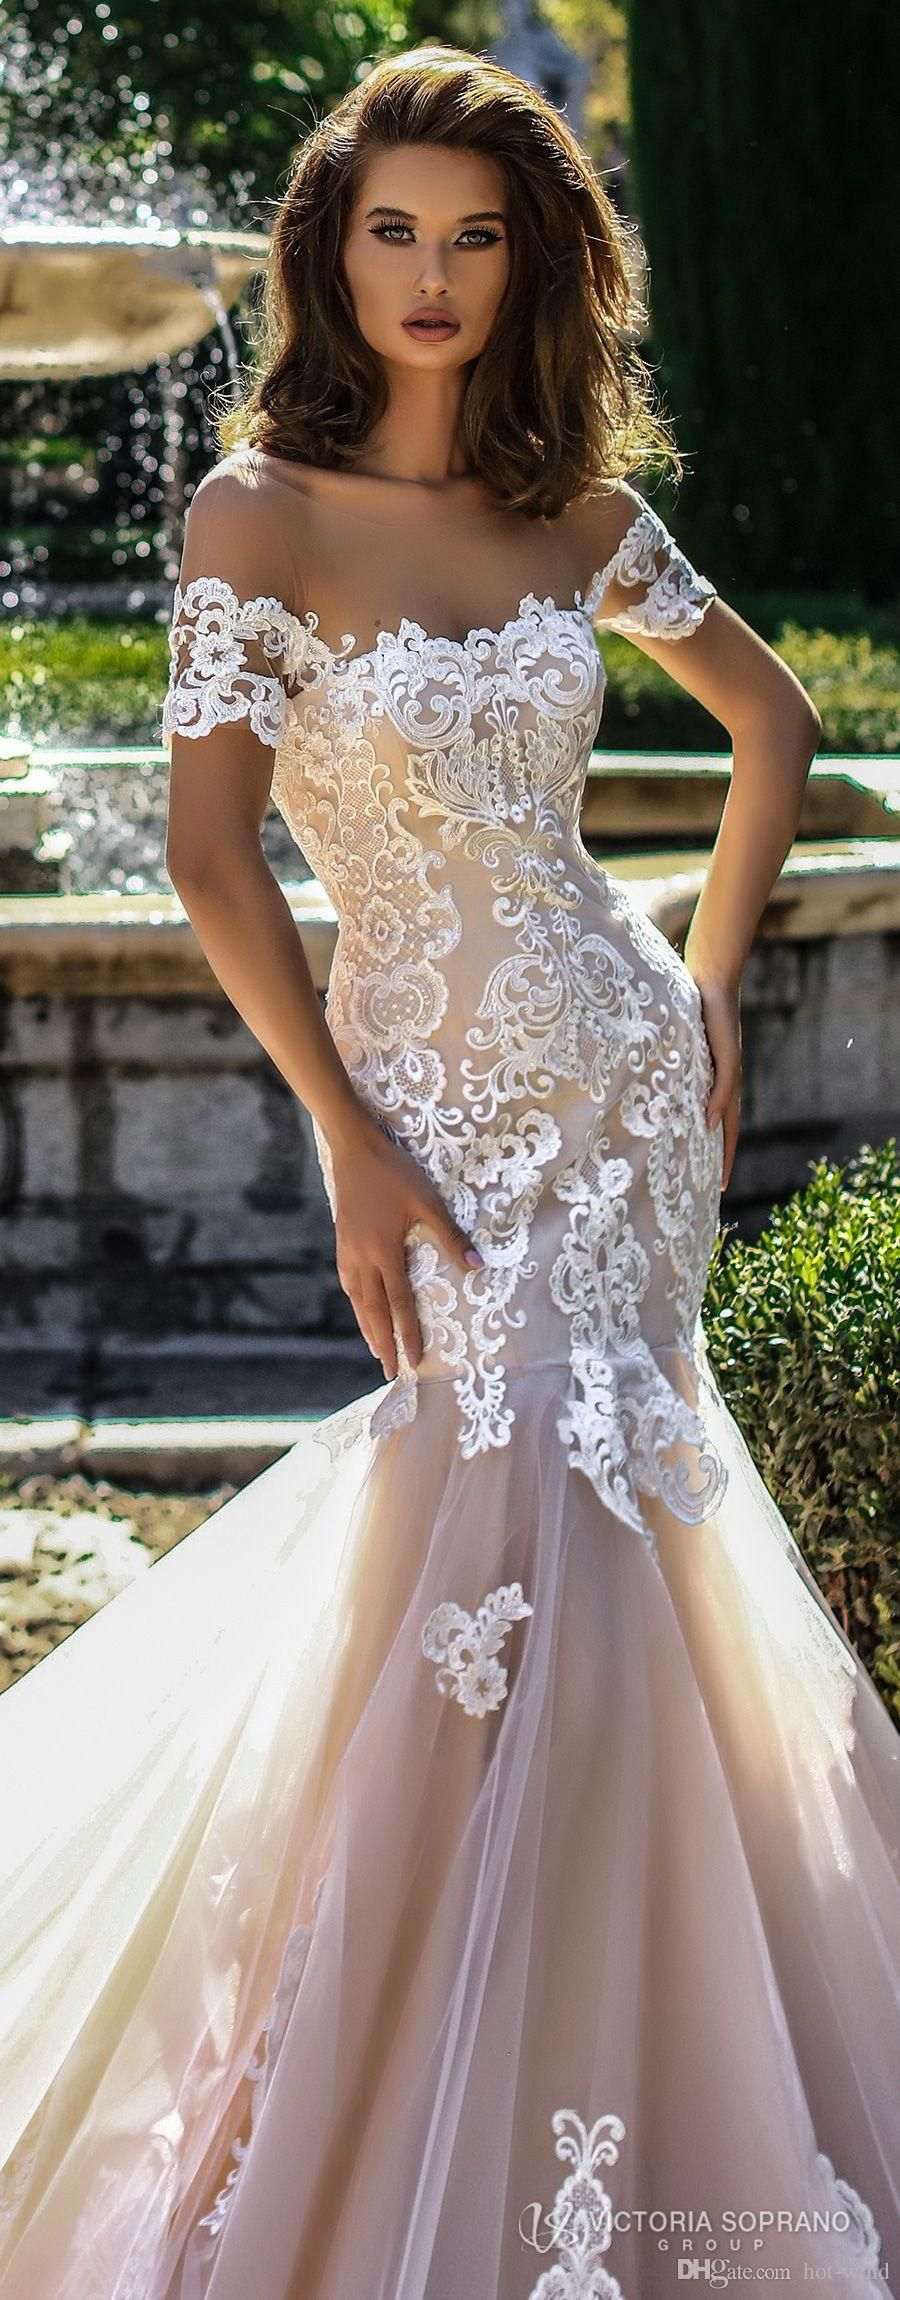 champagne mermaid wedding dresses country style new arrival